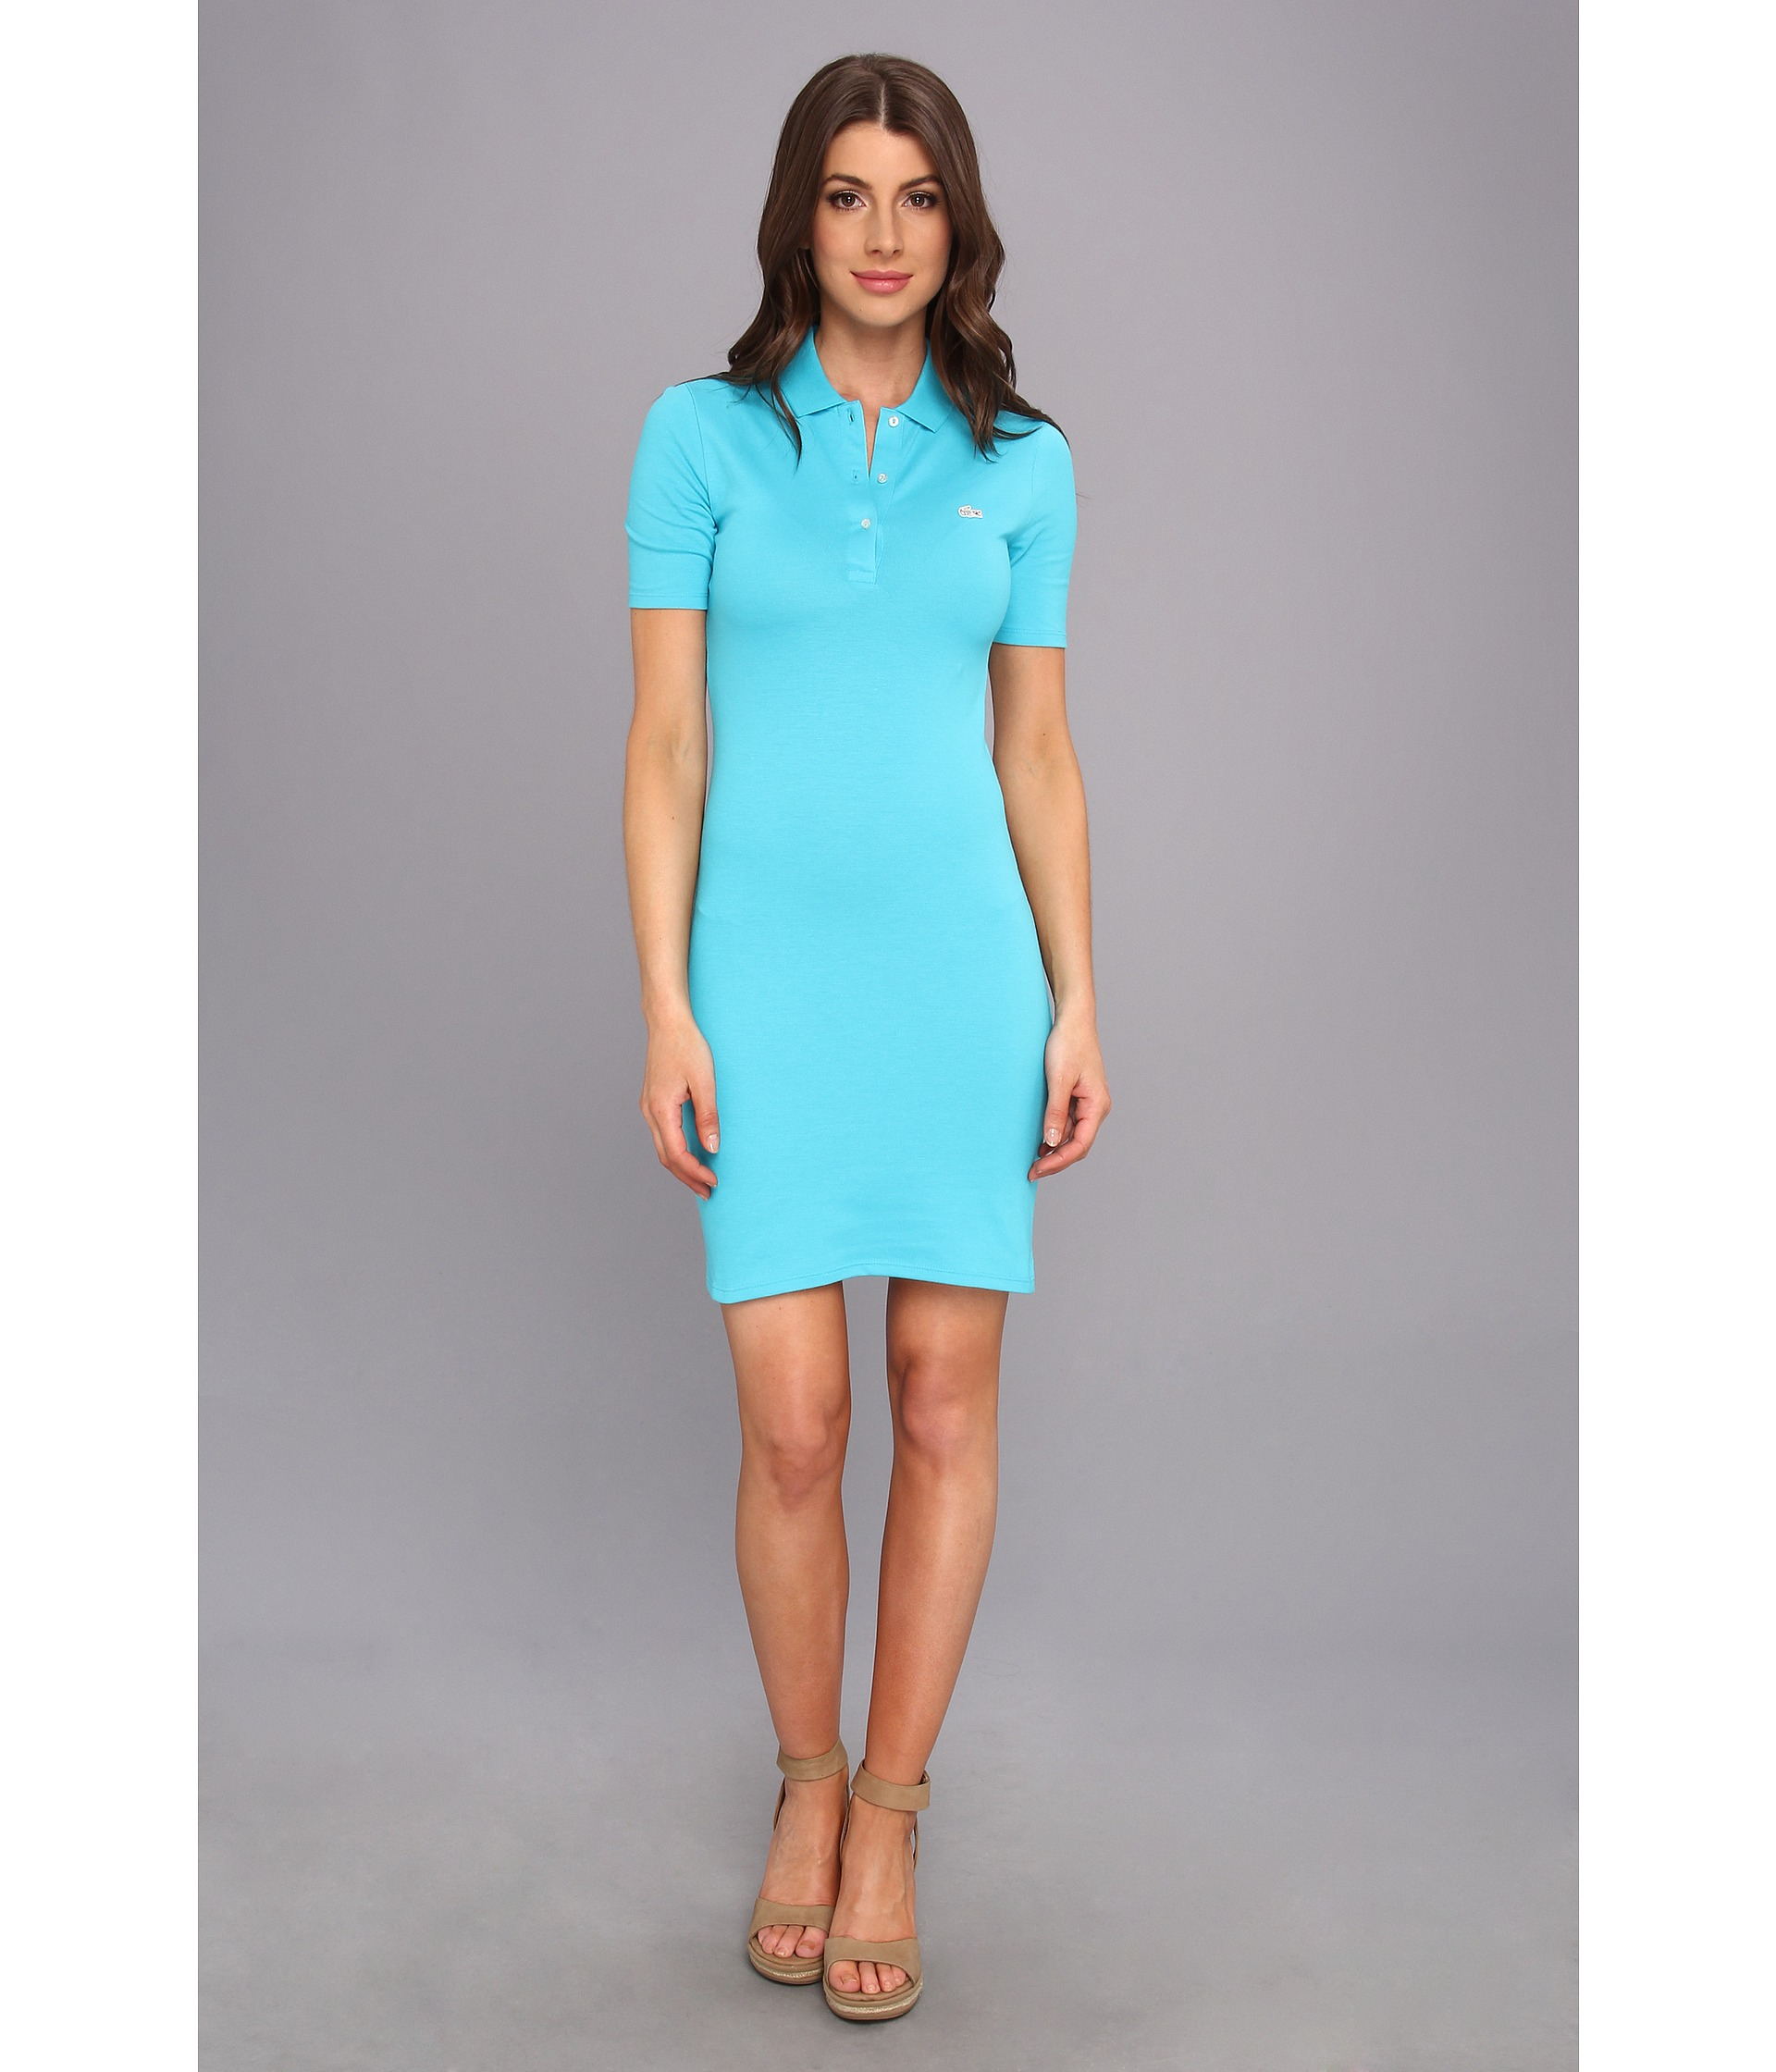 Teal Polo Dress